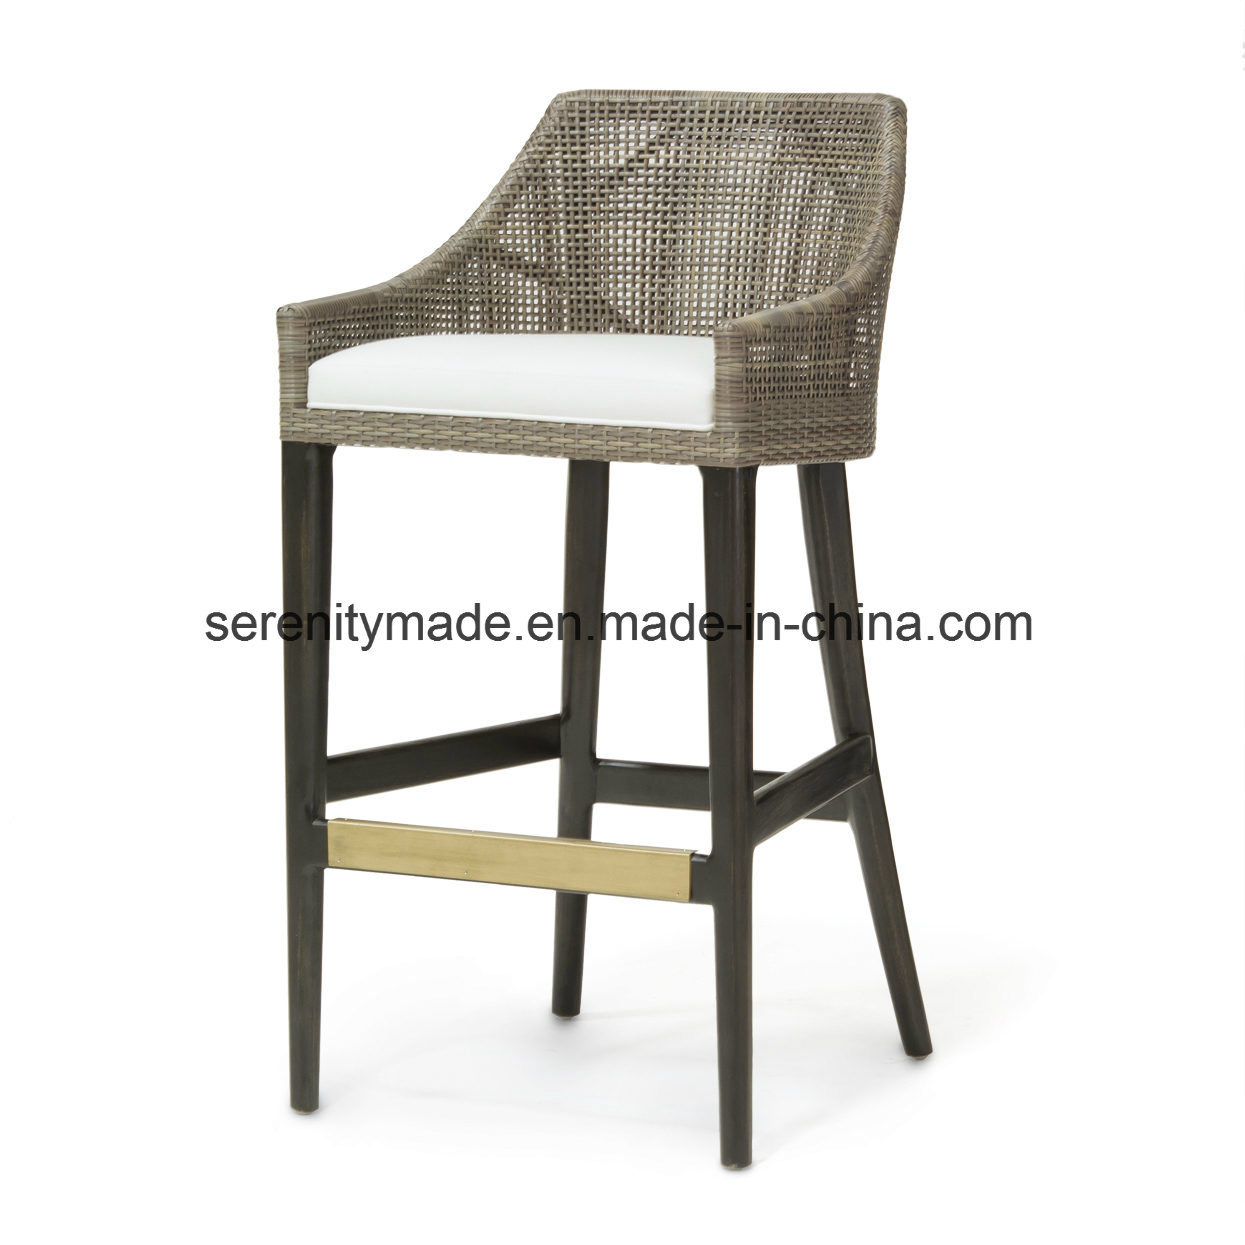 Aluminum Frame Synthetic Rattan Woven